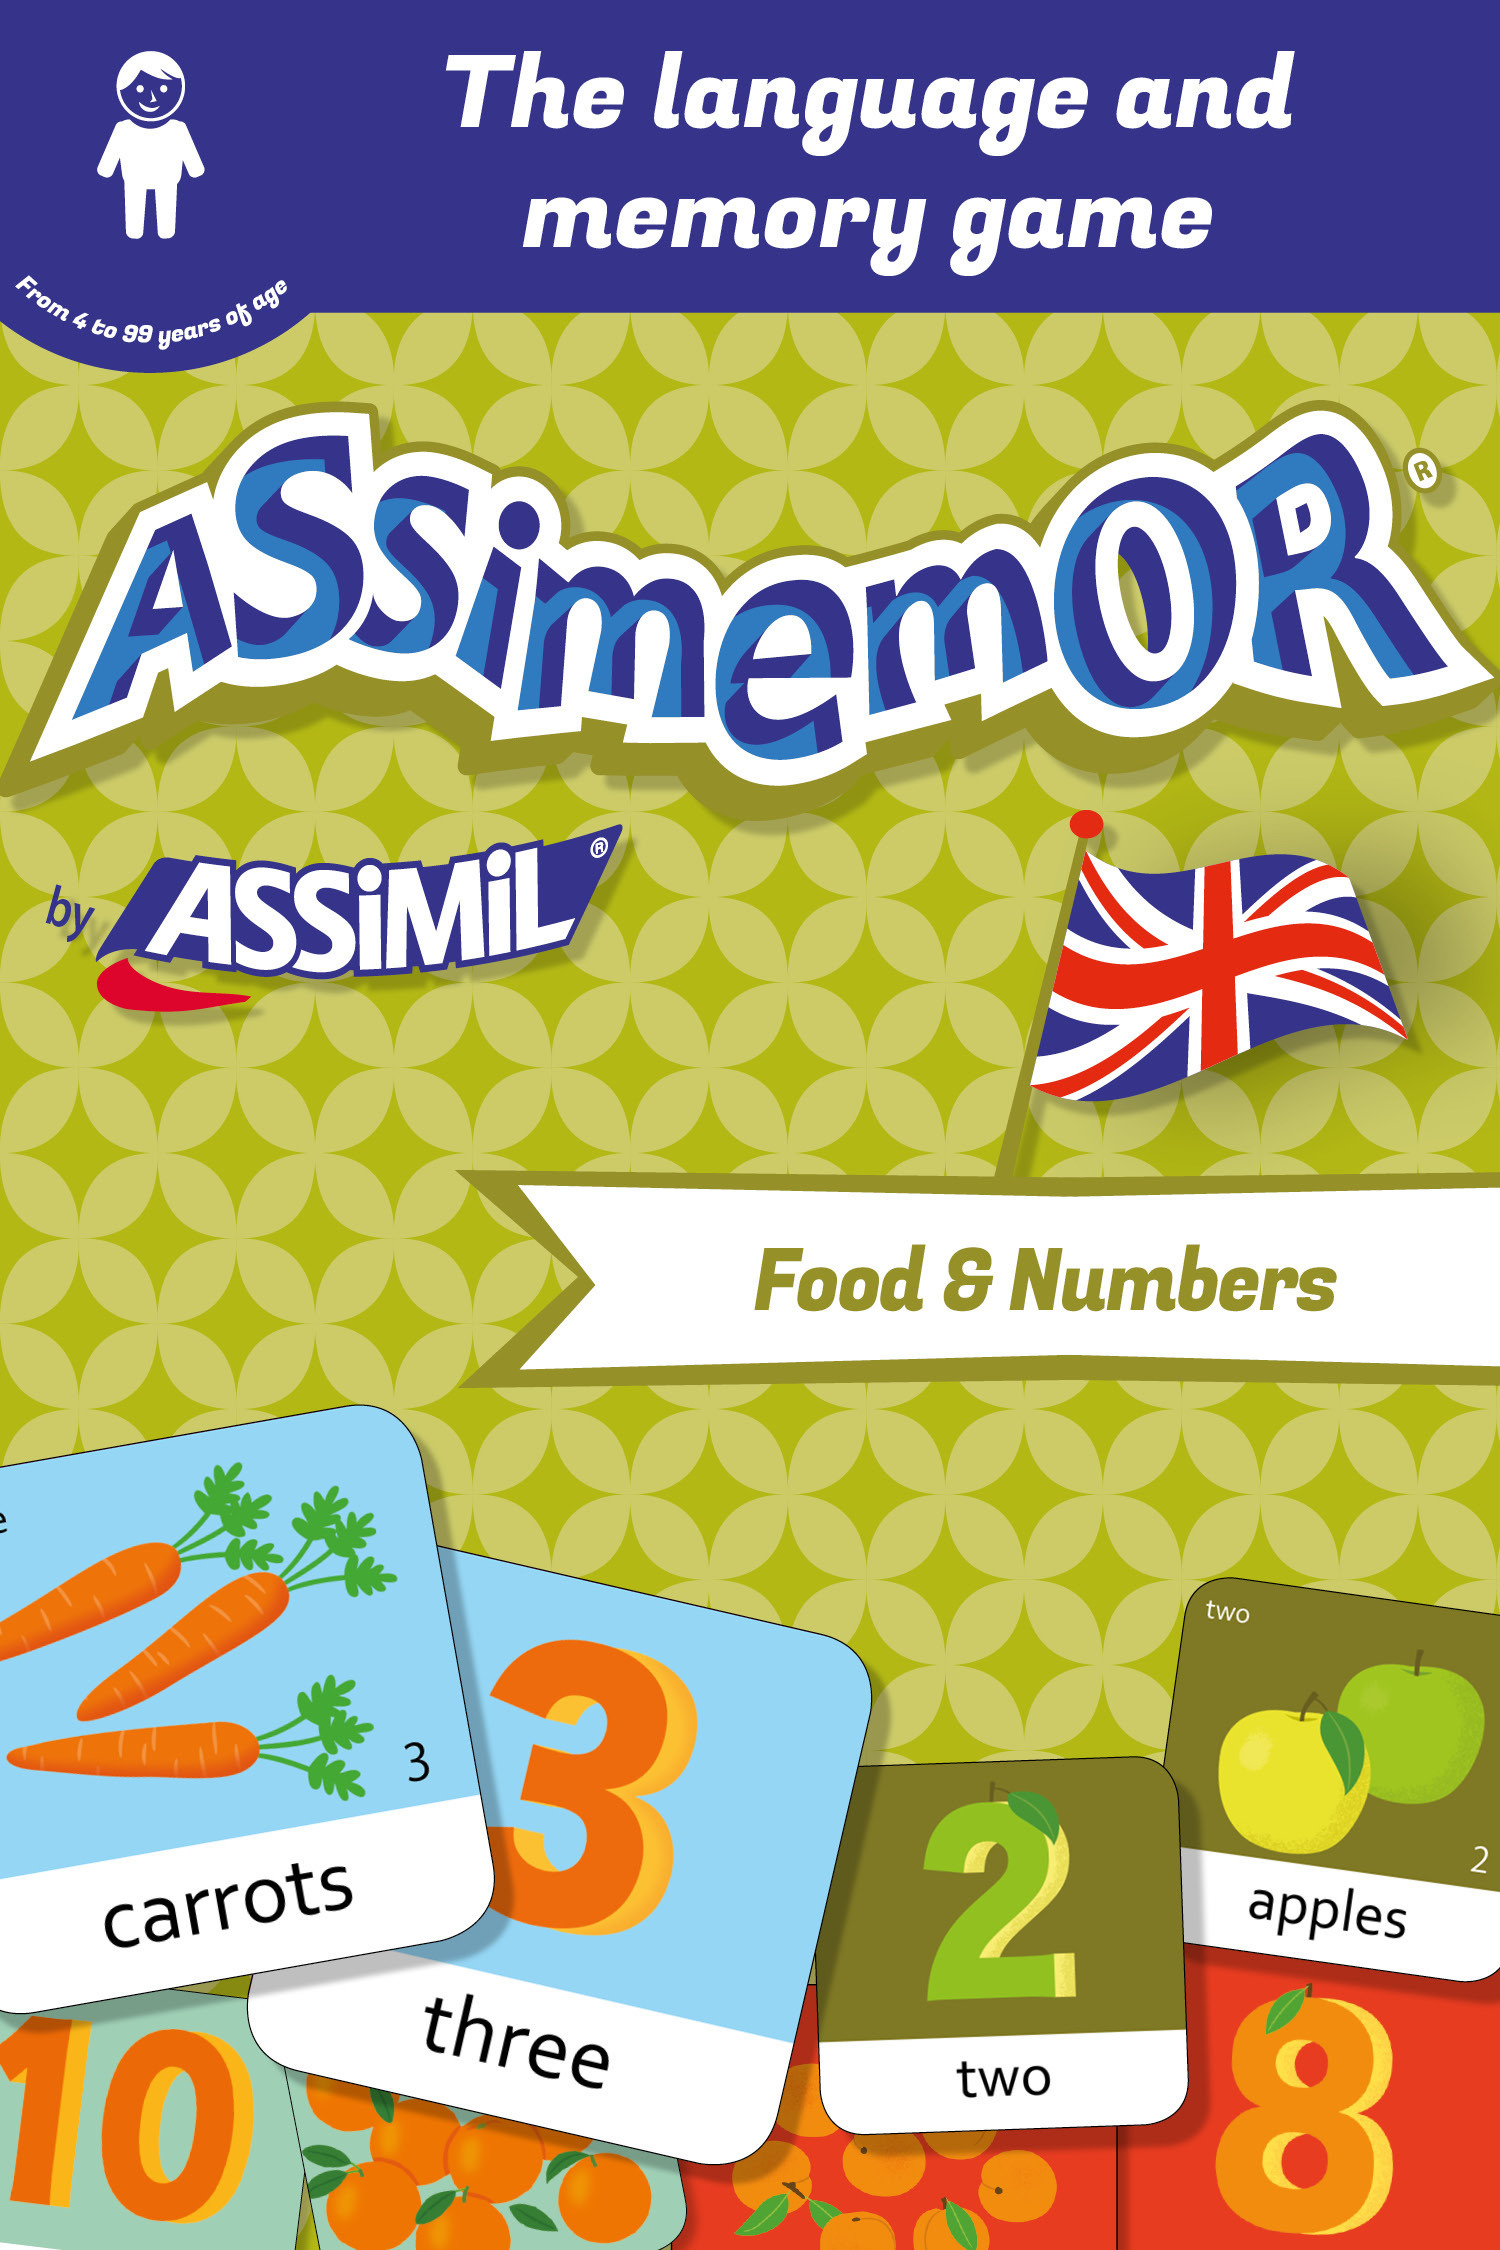 ASSIMEMOR ; food and numbers